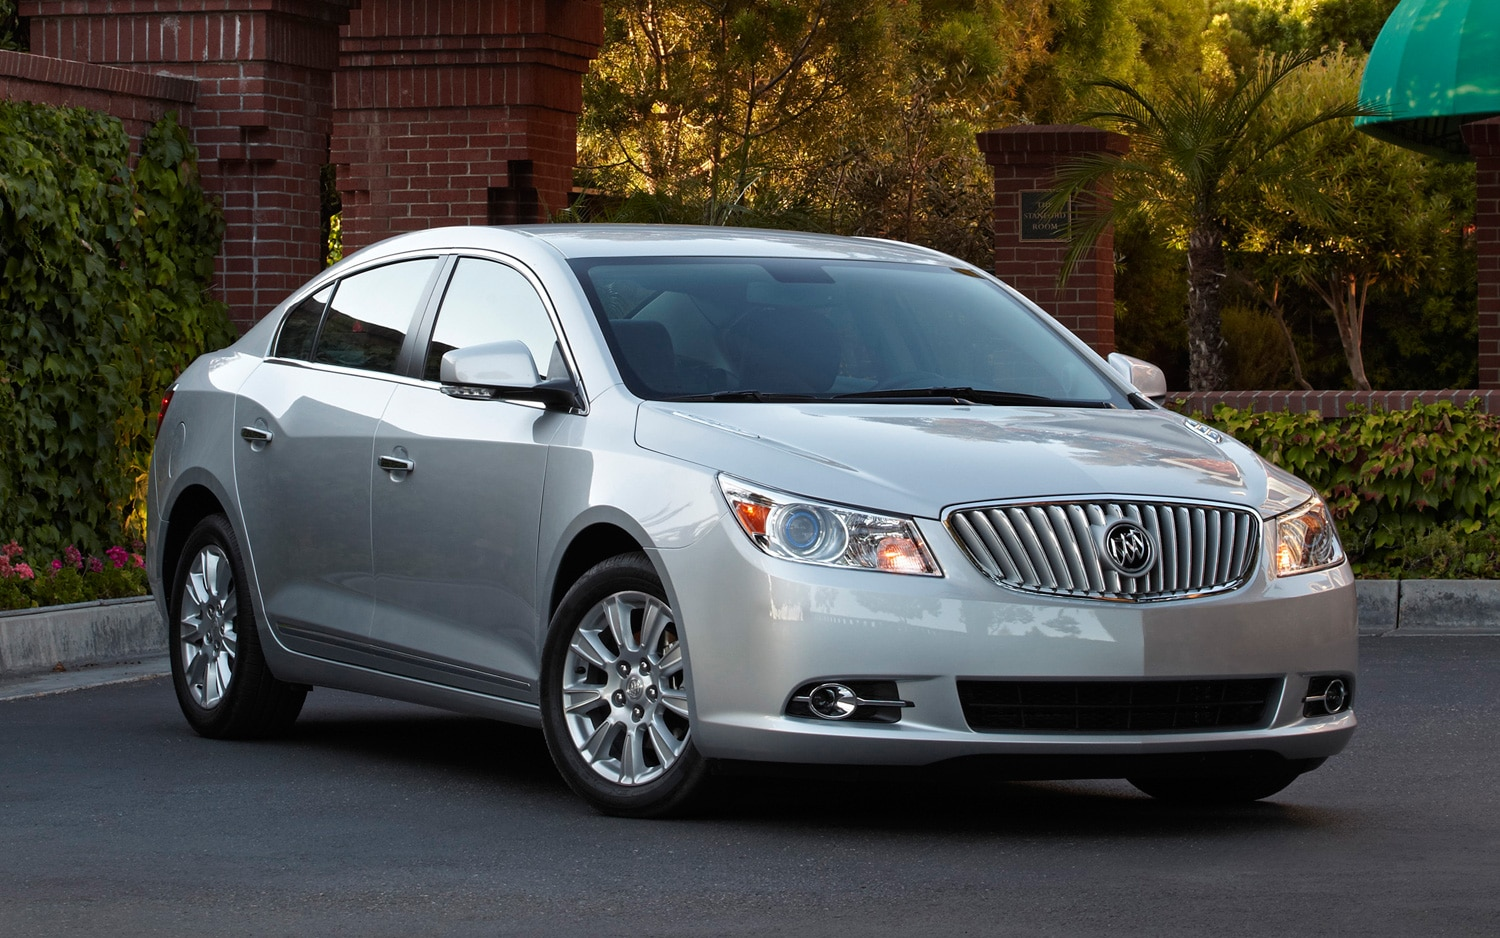 2013 Buick LaCrosse EAssist Right Front 11